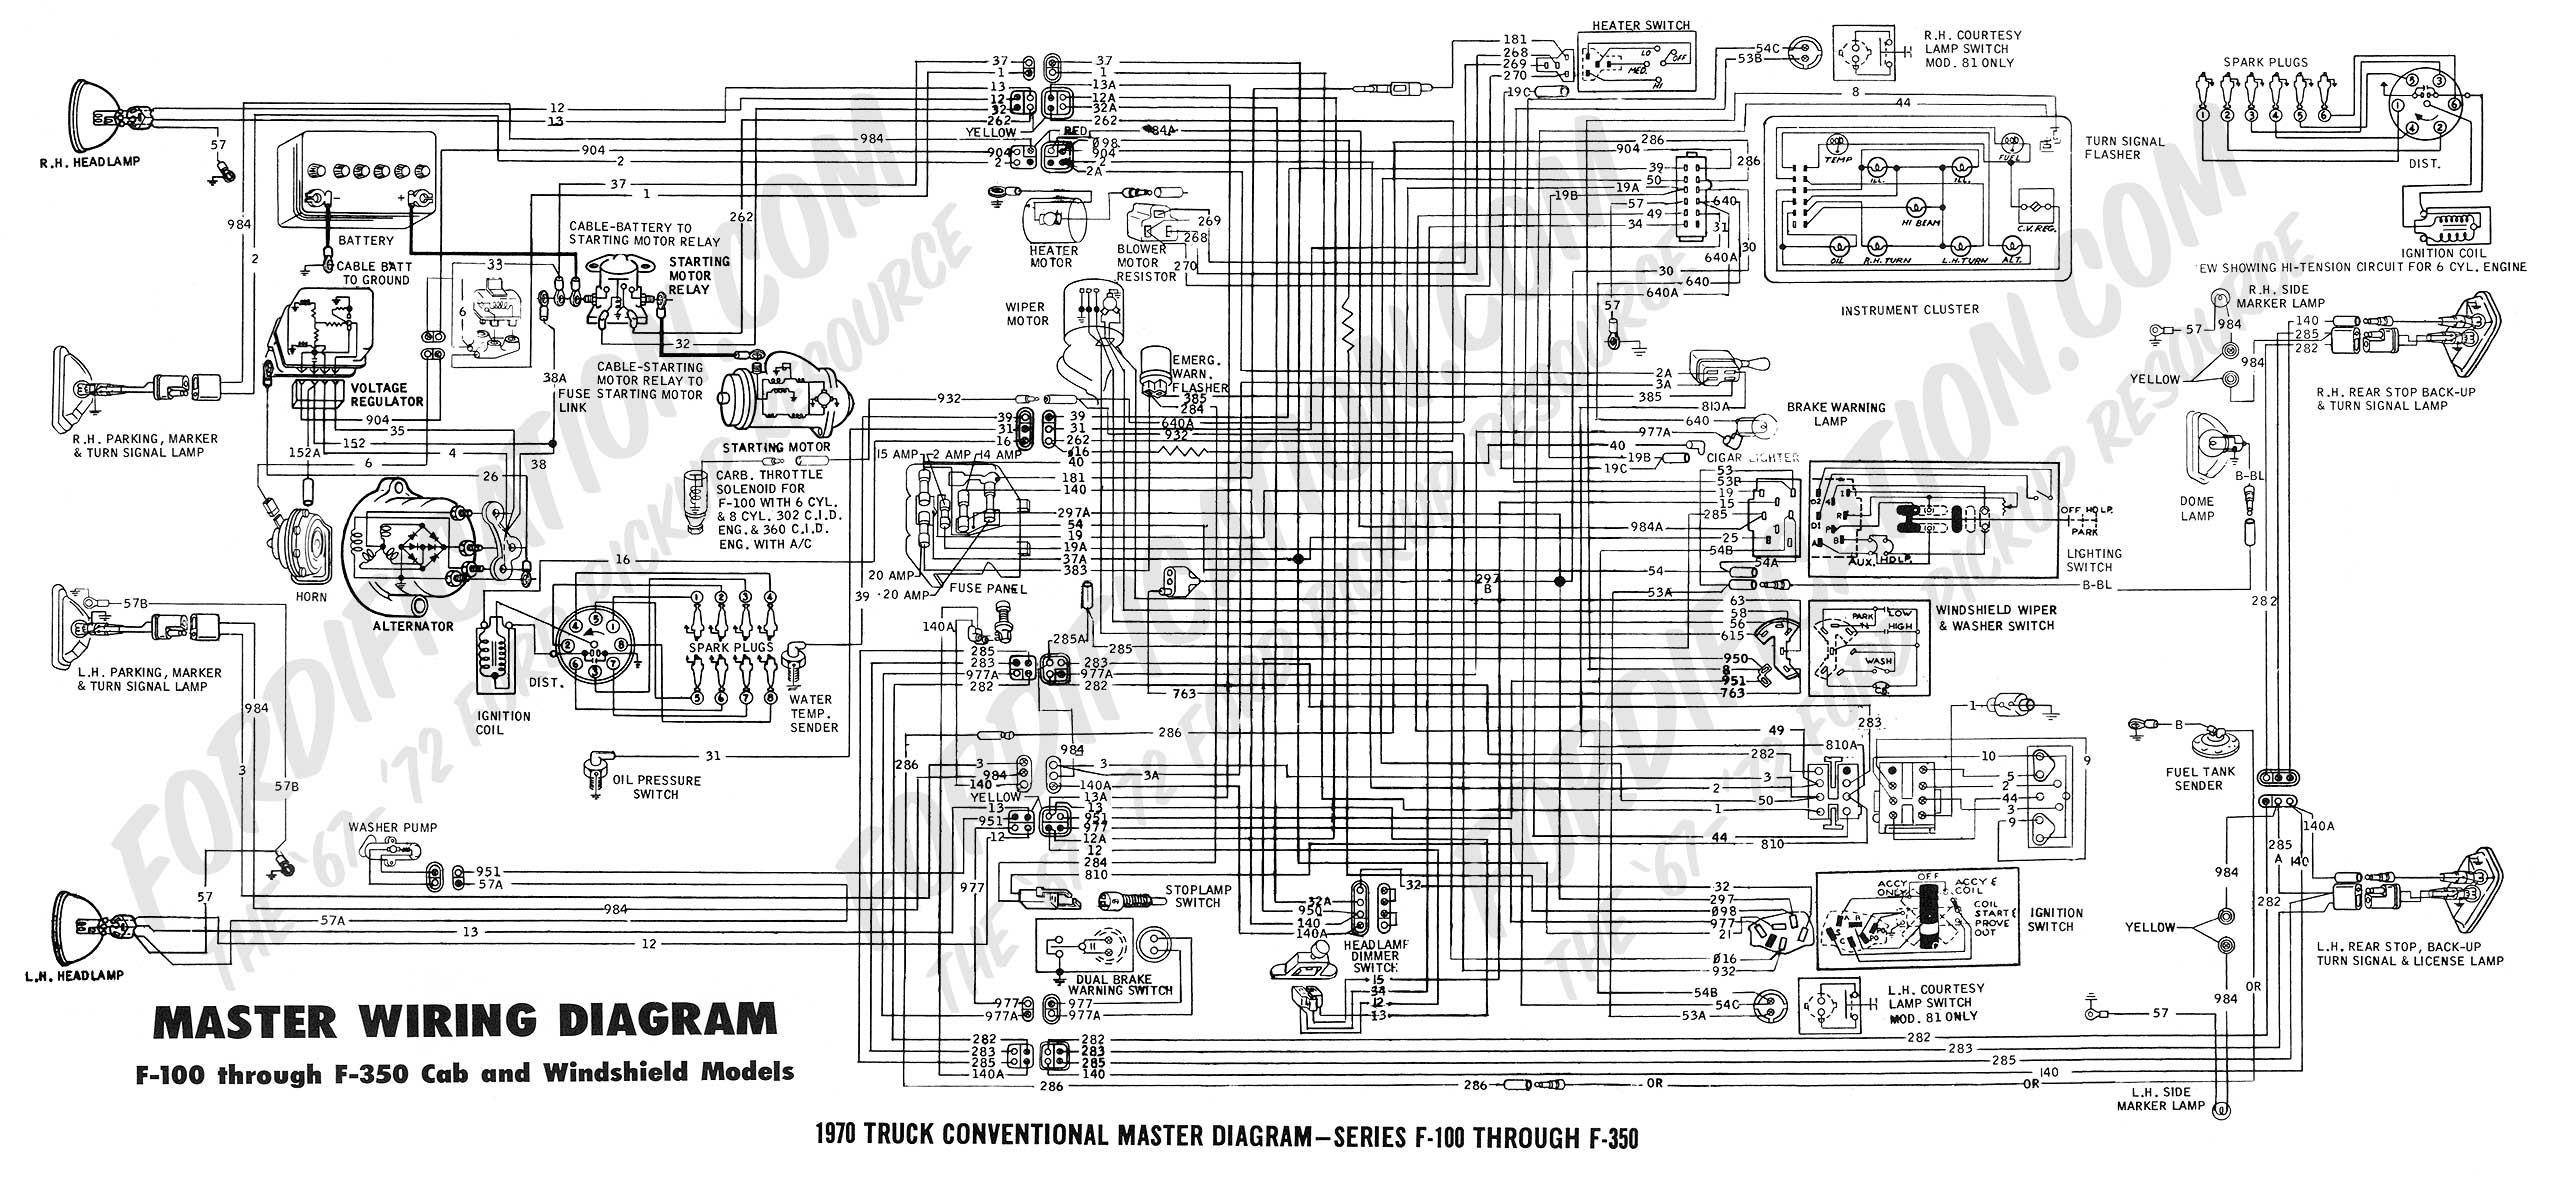 wiring diagram 70_master 1990 ford tempo wiring diagram wiring diagram simonand 1970 mustang wiring diagram at alyssarenee.co